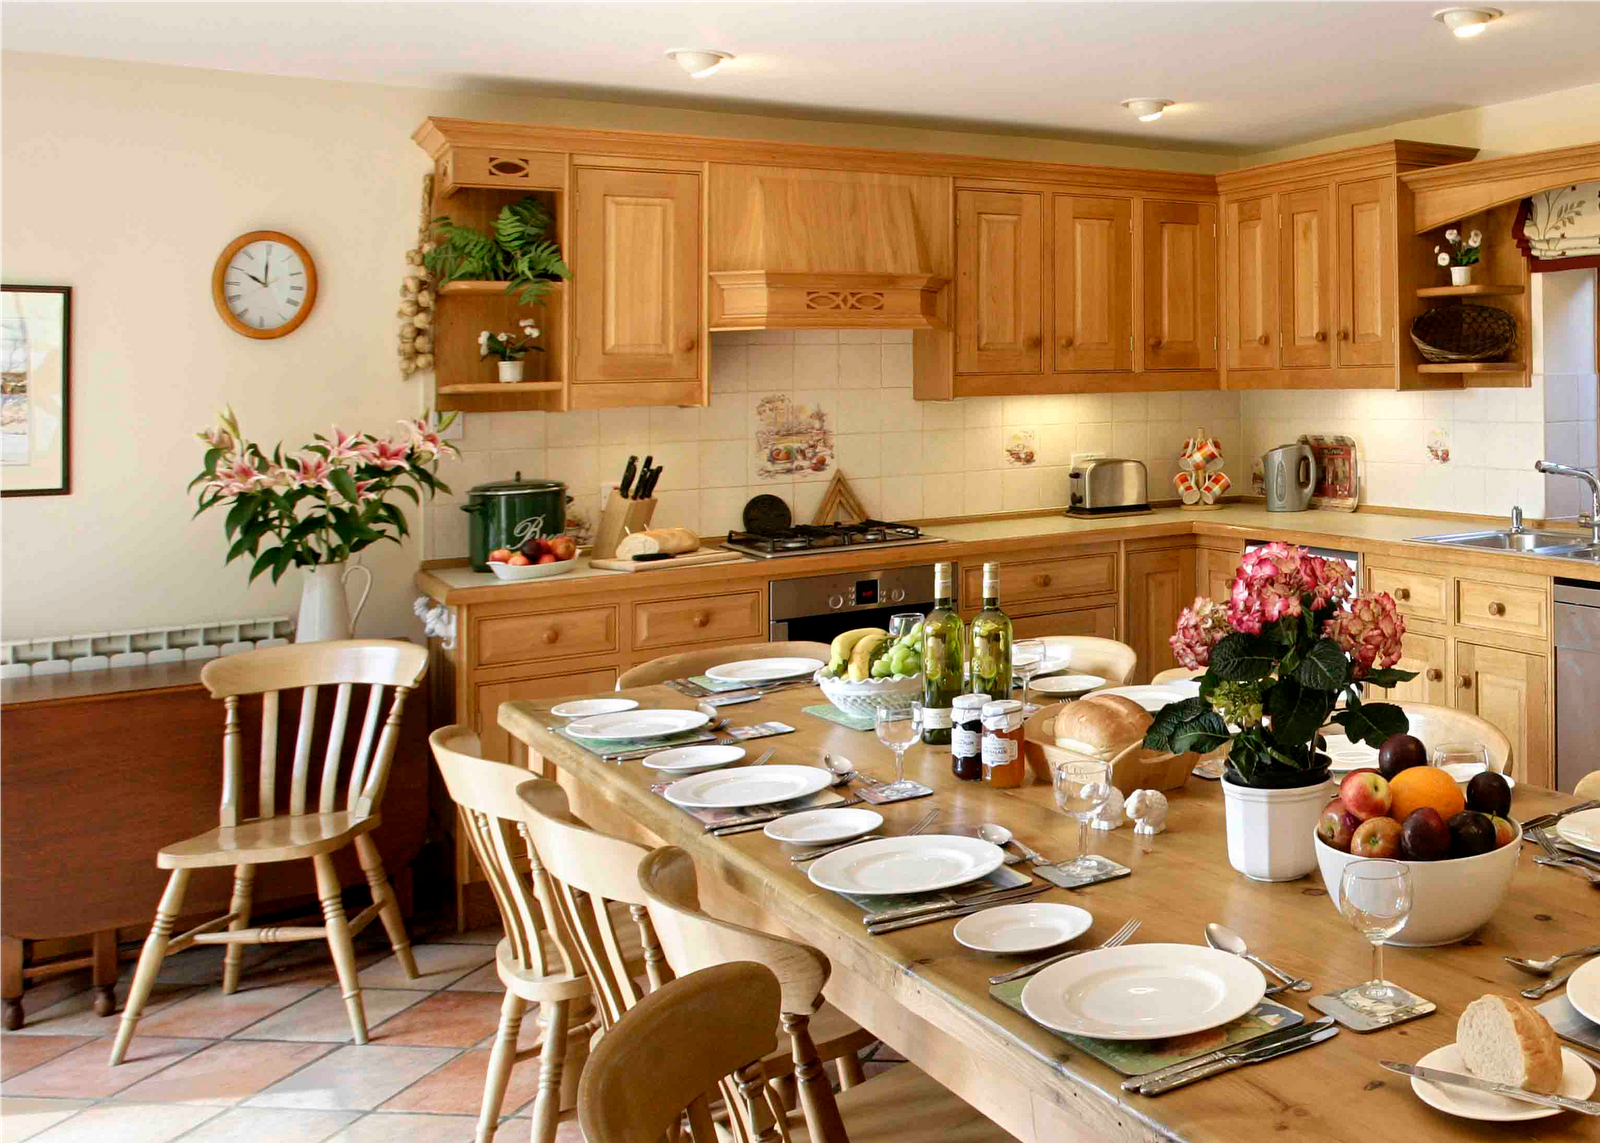 English country kitchen ideas room design ideas for Country kitchen designs